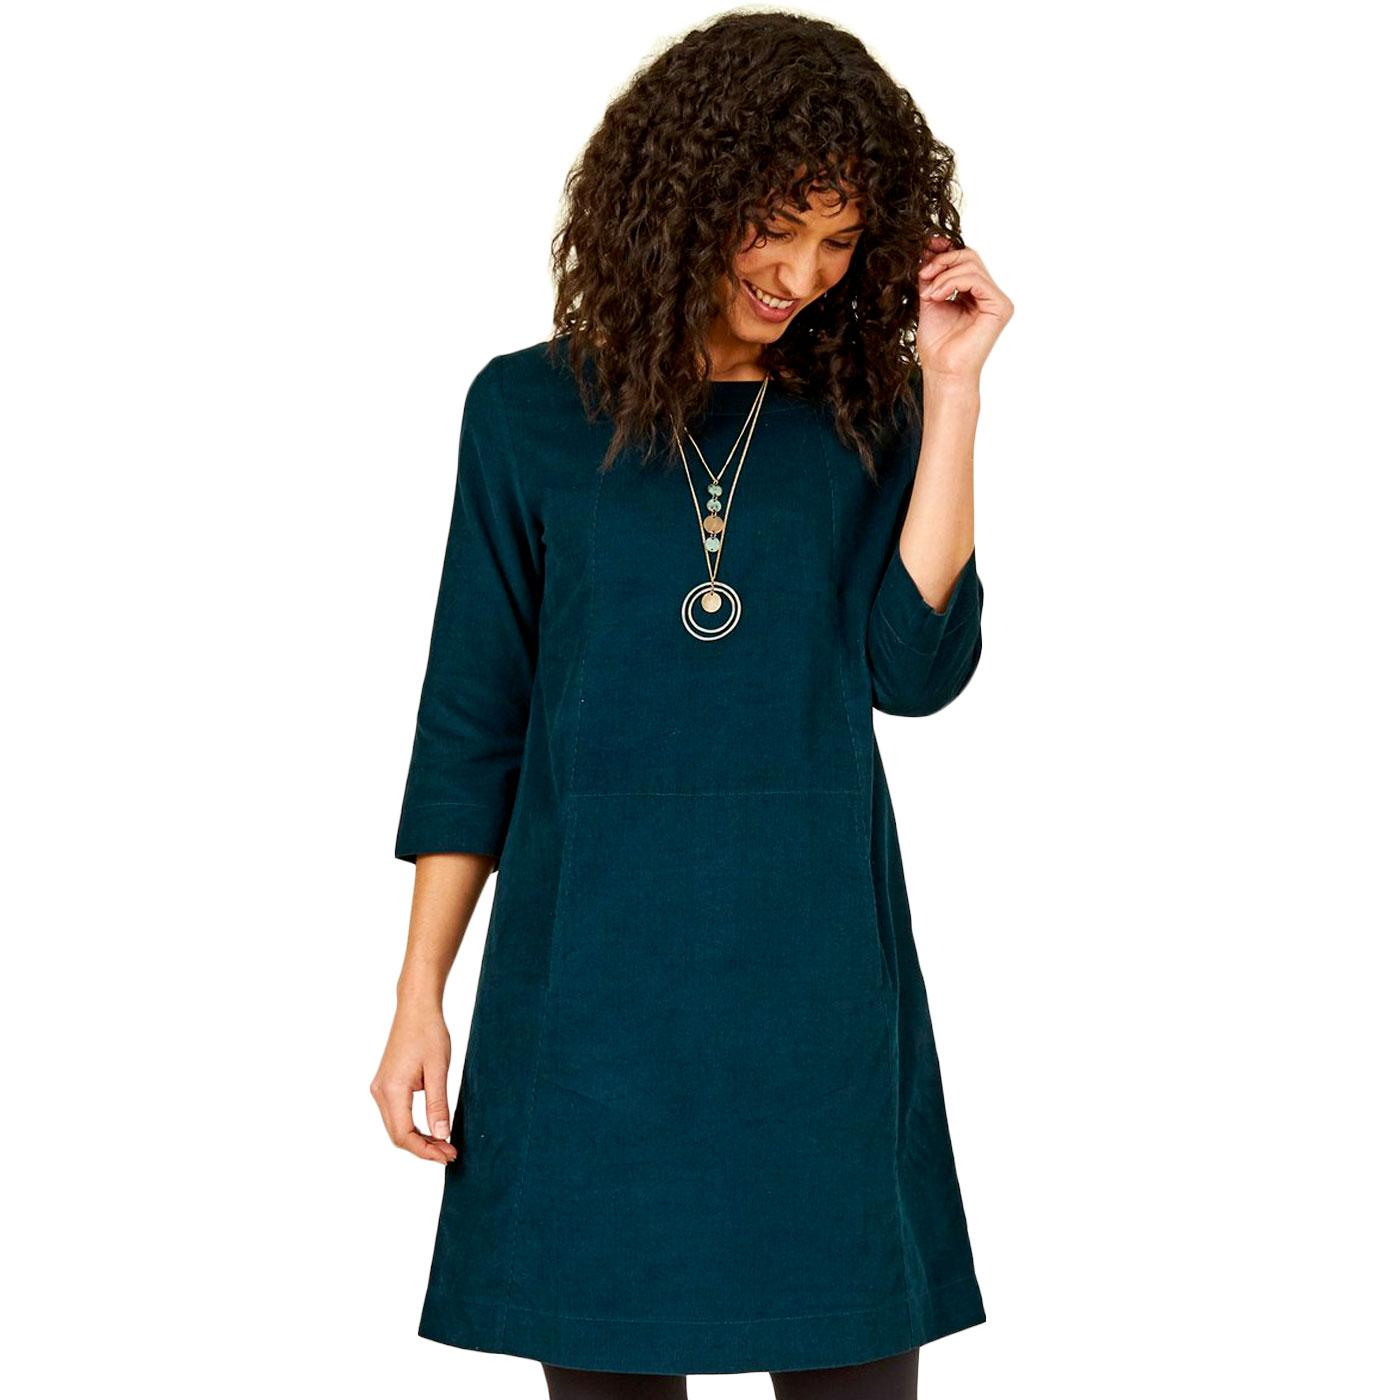 NOMADS Retro 70s Needle Cord Tunic Dress In Fir